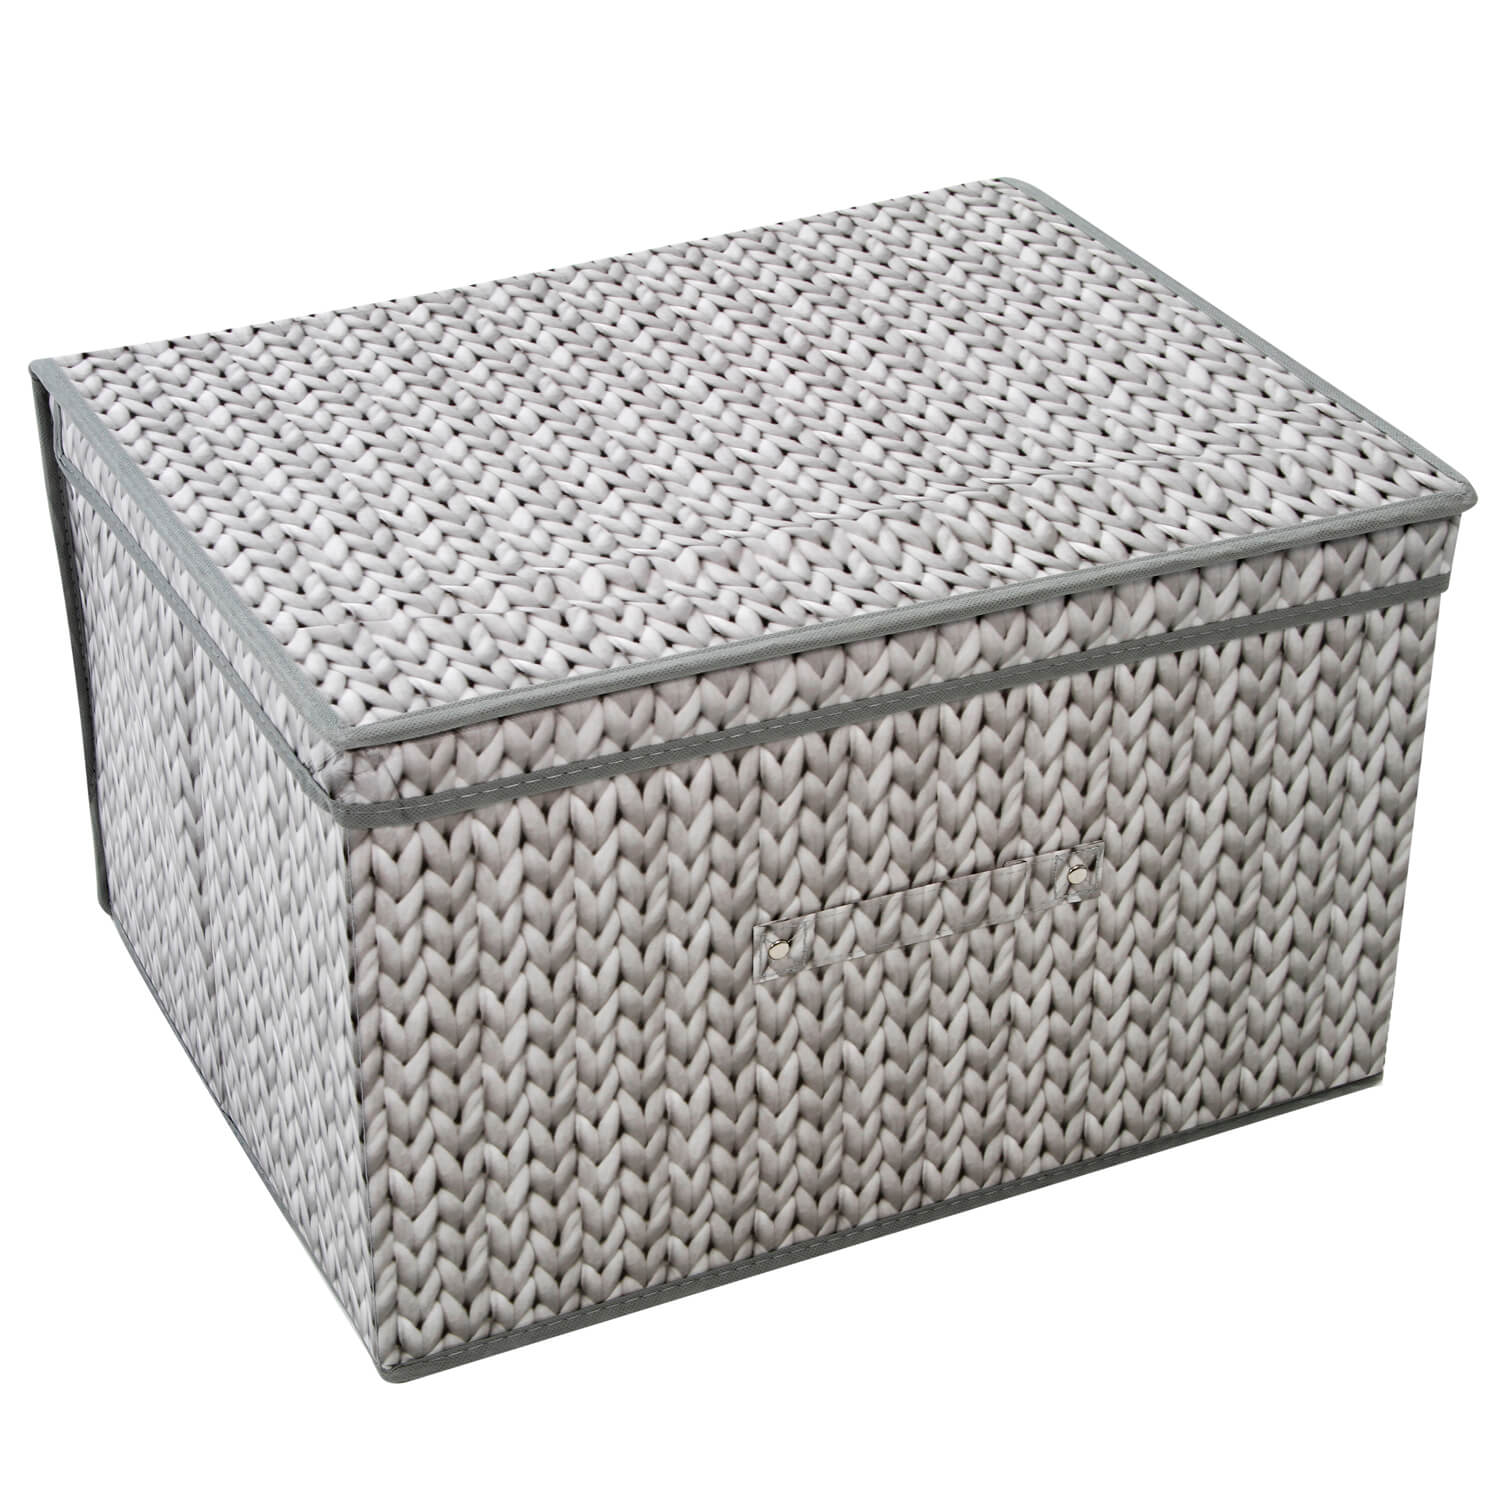 57b02fb90ced Knit Grey Foldable Storage Chest - Home Store + More